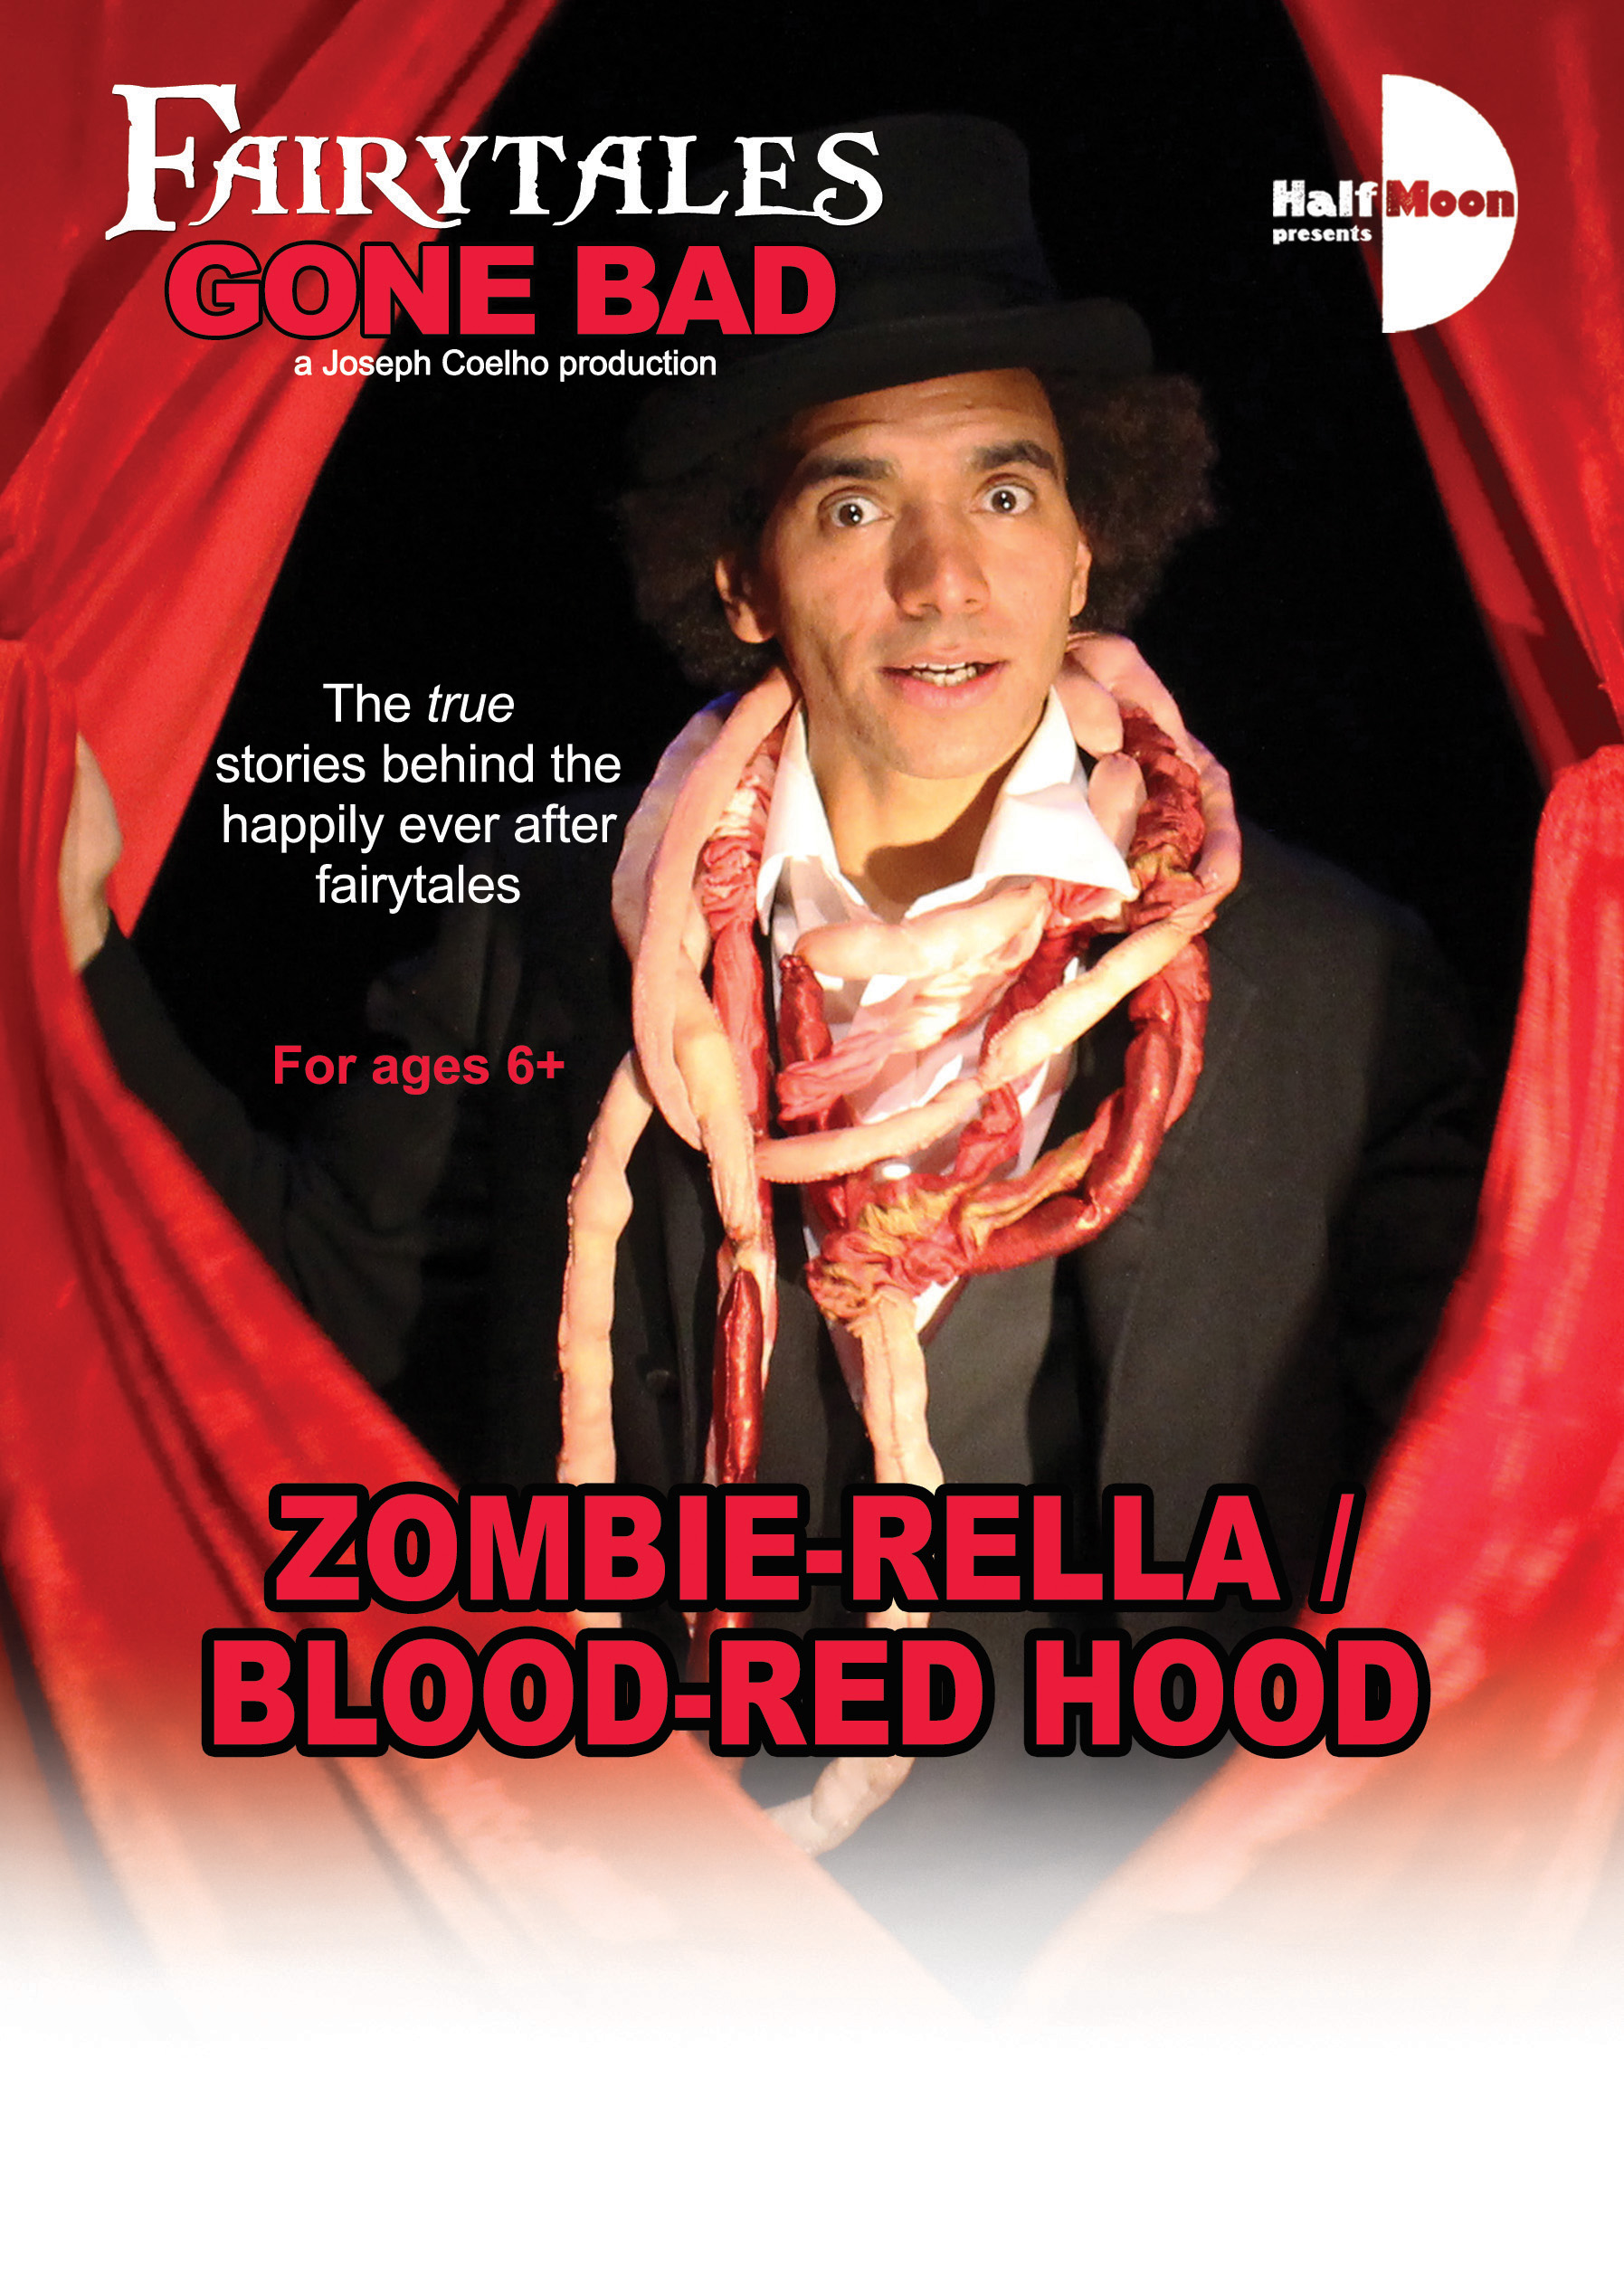 Fairytales Gone Bad: Zombie-rella / Blood-red Hood flyer